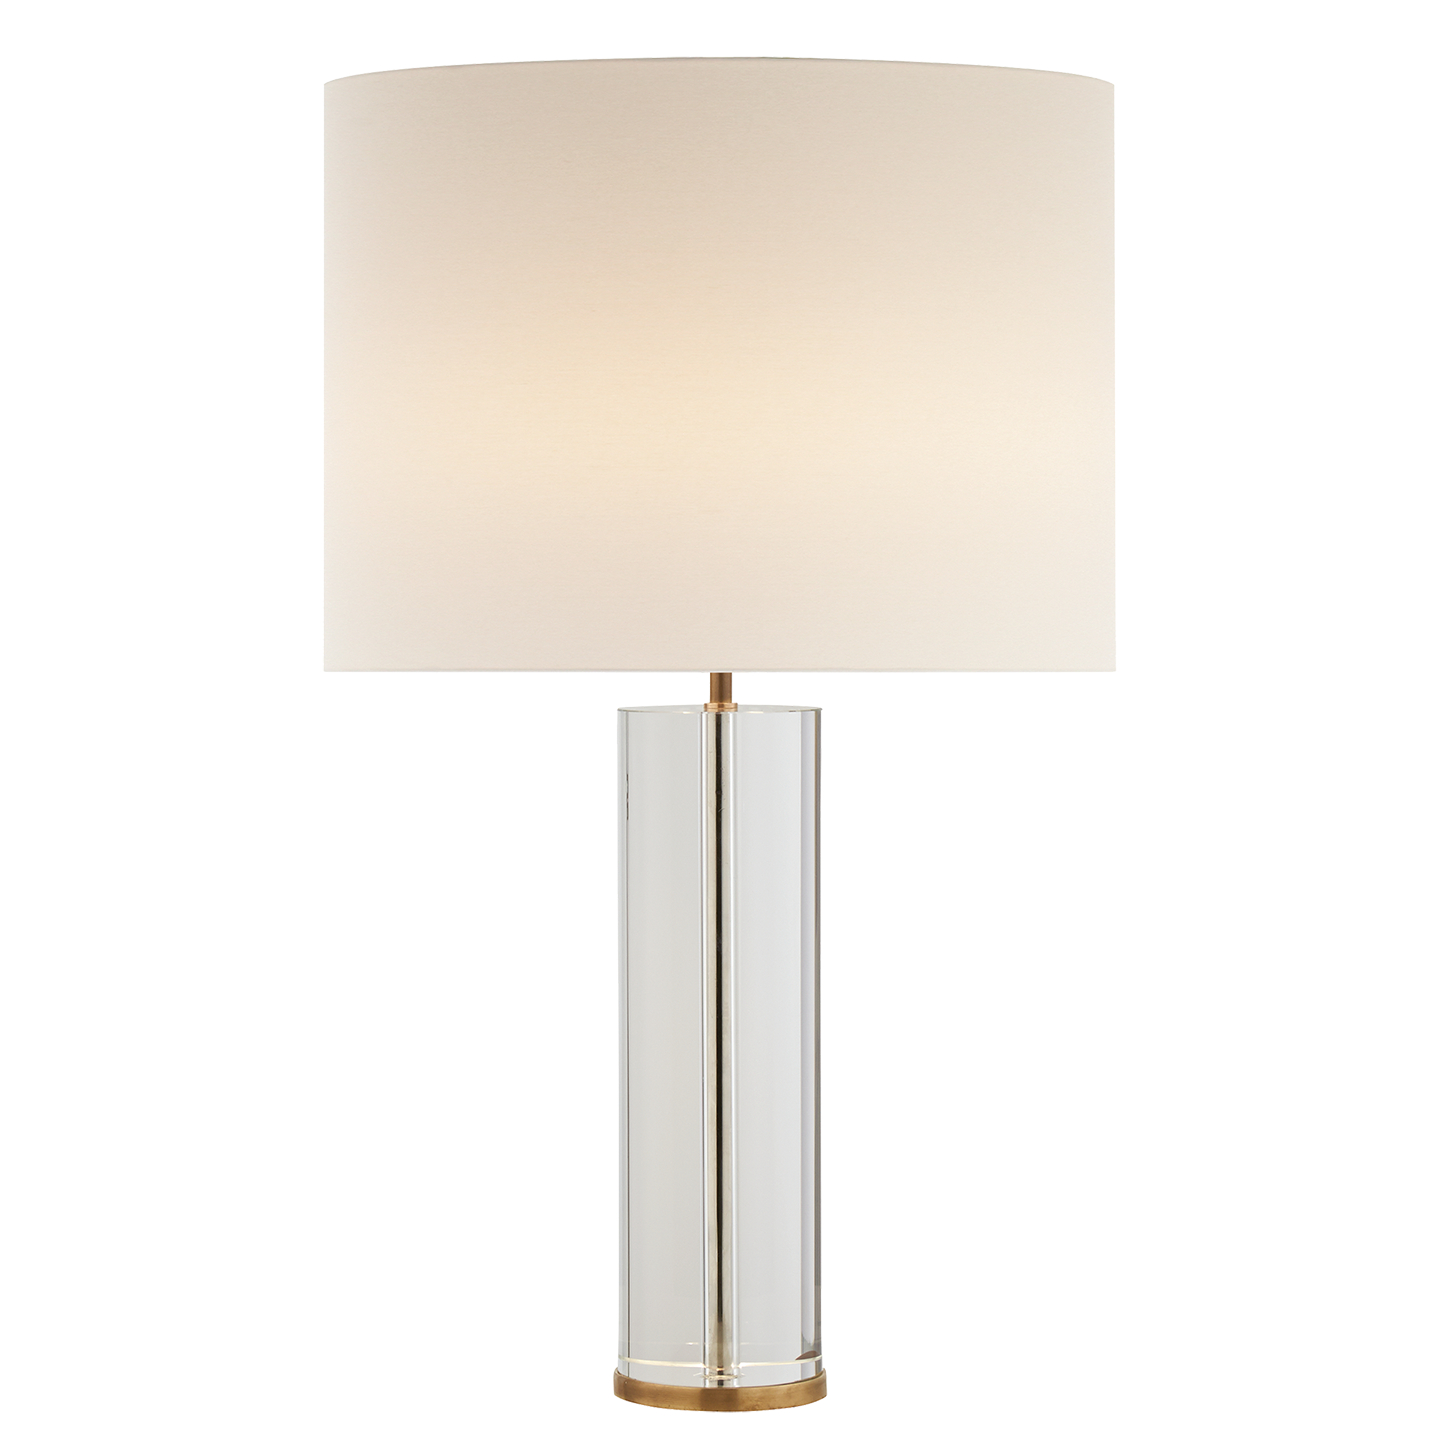 Visual Comfort ARN 3024CG/HAB L AERIN Modern Lineham Table Lamp In Crystal  And Hand Rubbed Antique Brass With Linen Shade